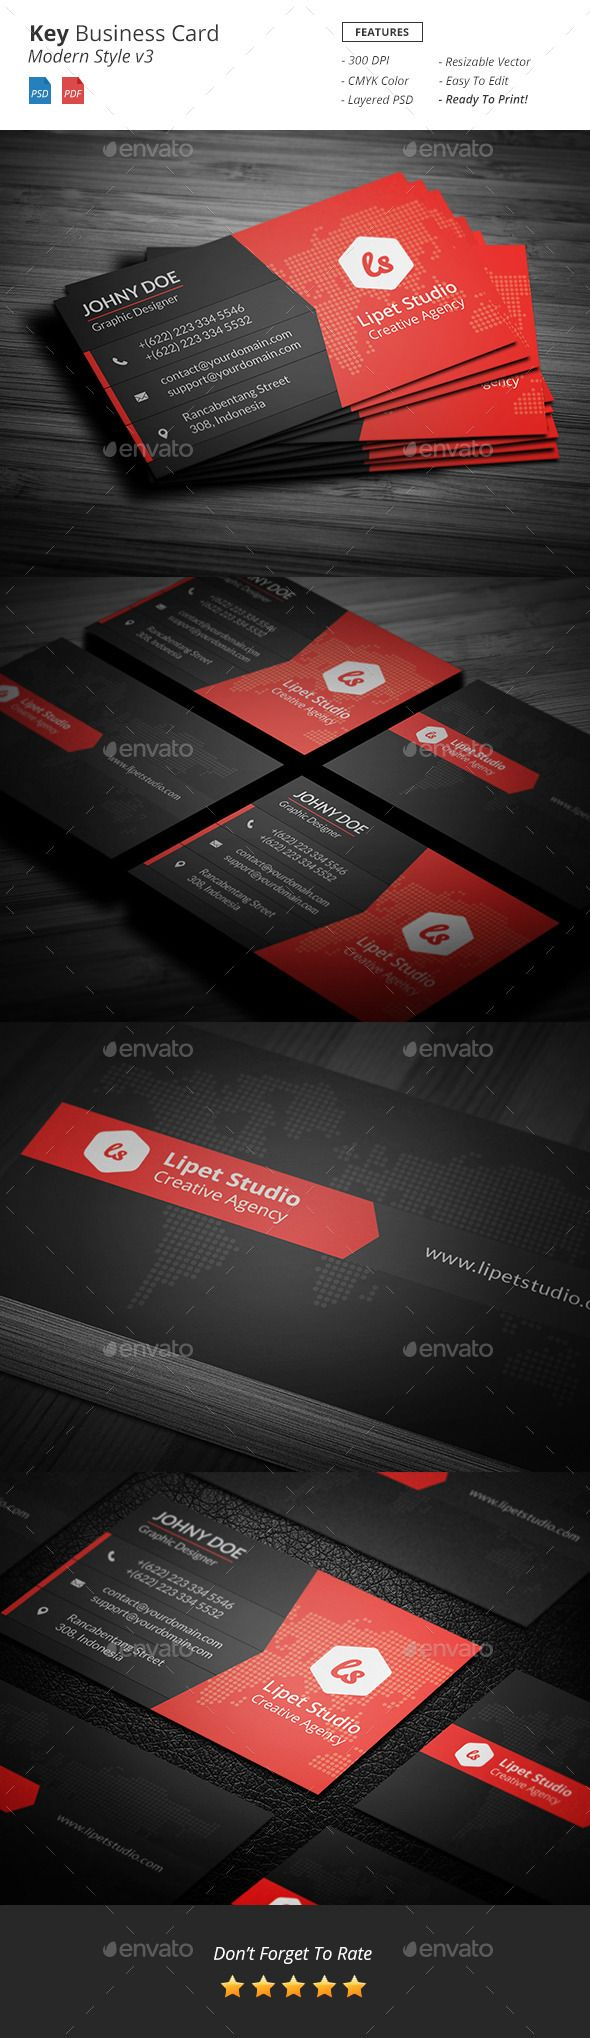 Key - Modern Business Card Template v3